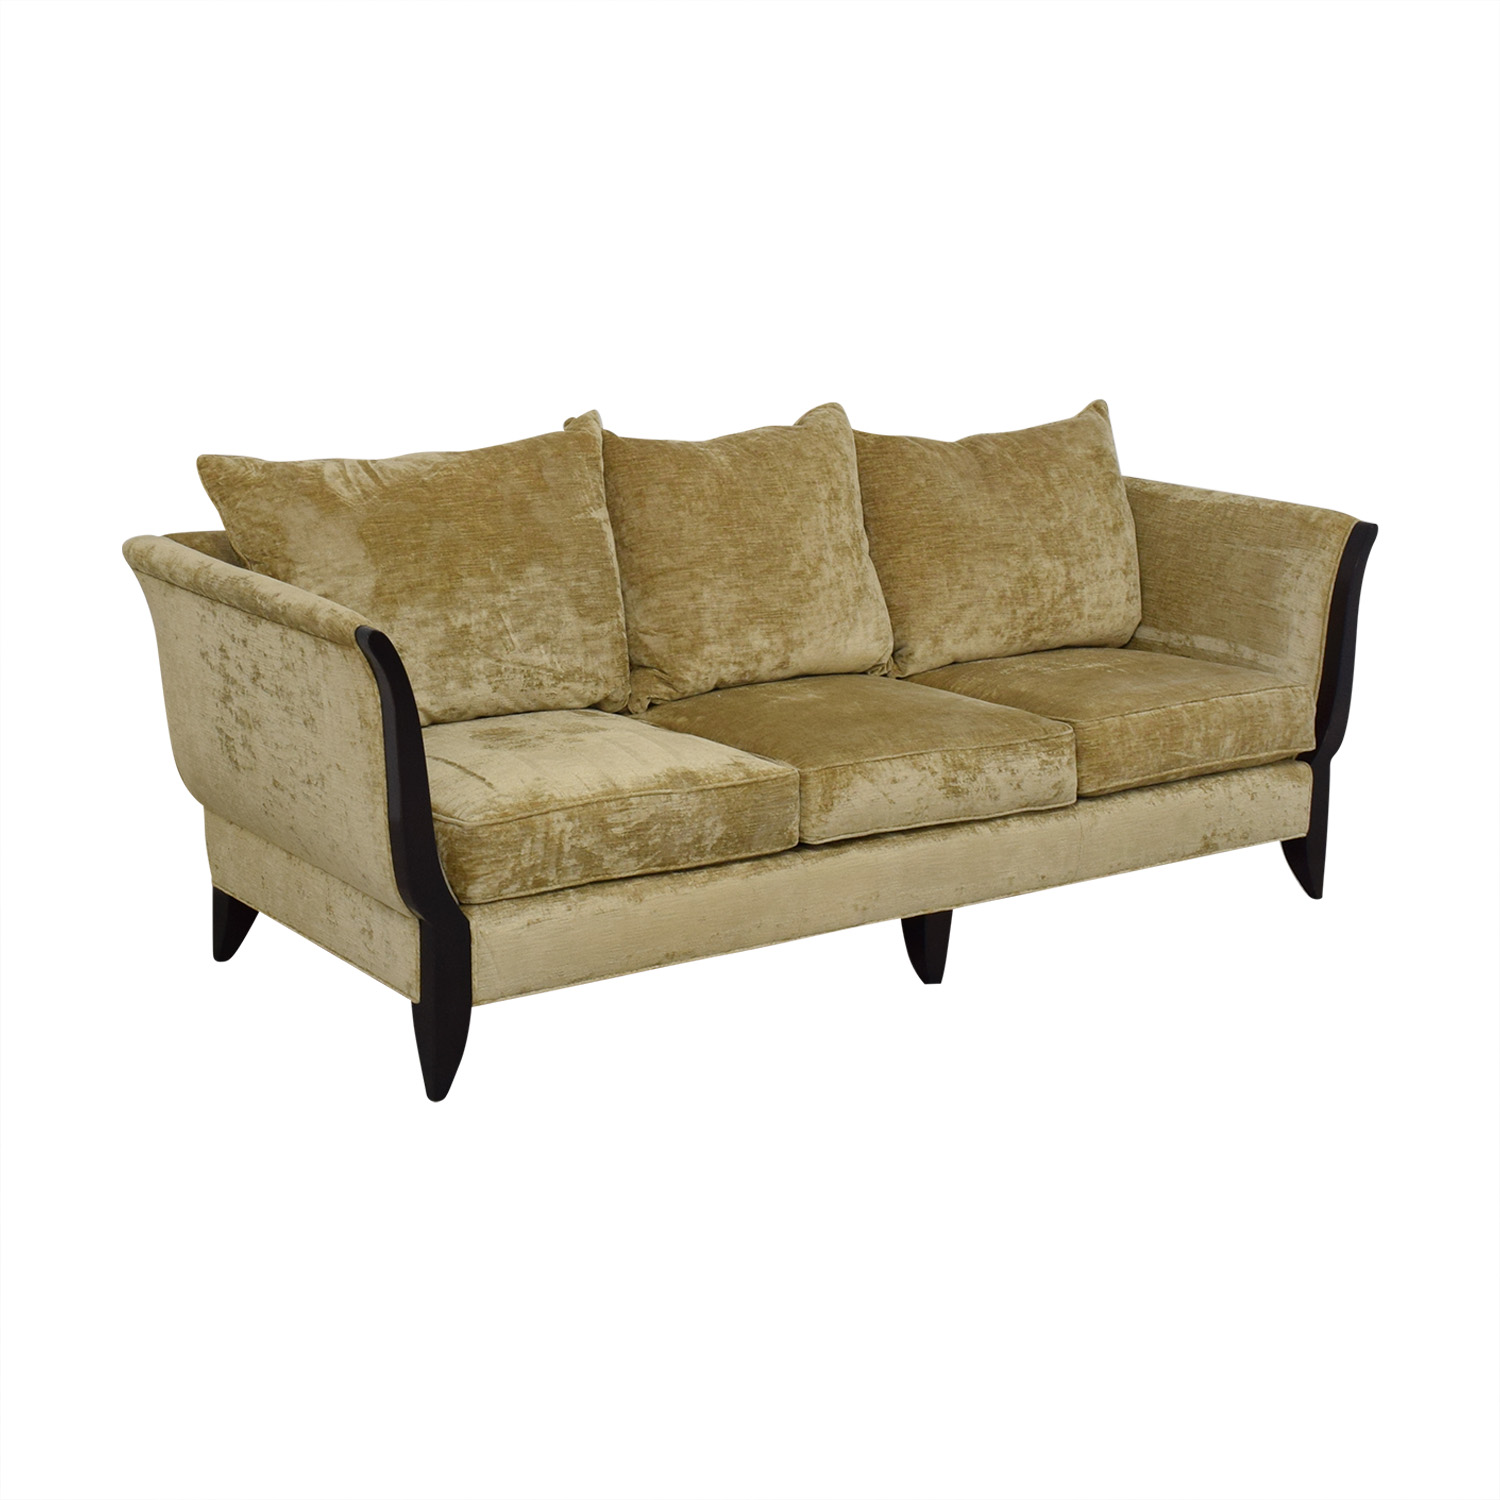 Fabulous 81 Off Swaim Swaim Cabriole Sofa Sofas Ncnpc Chair Design For Home Ncnpcorg